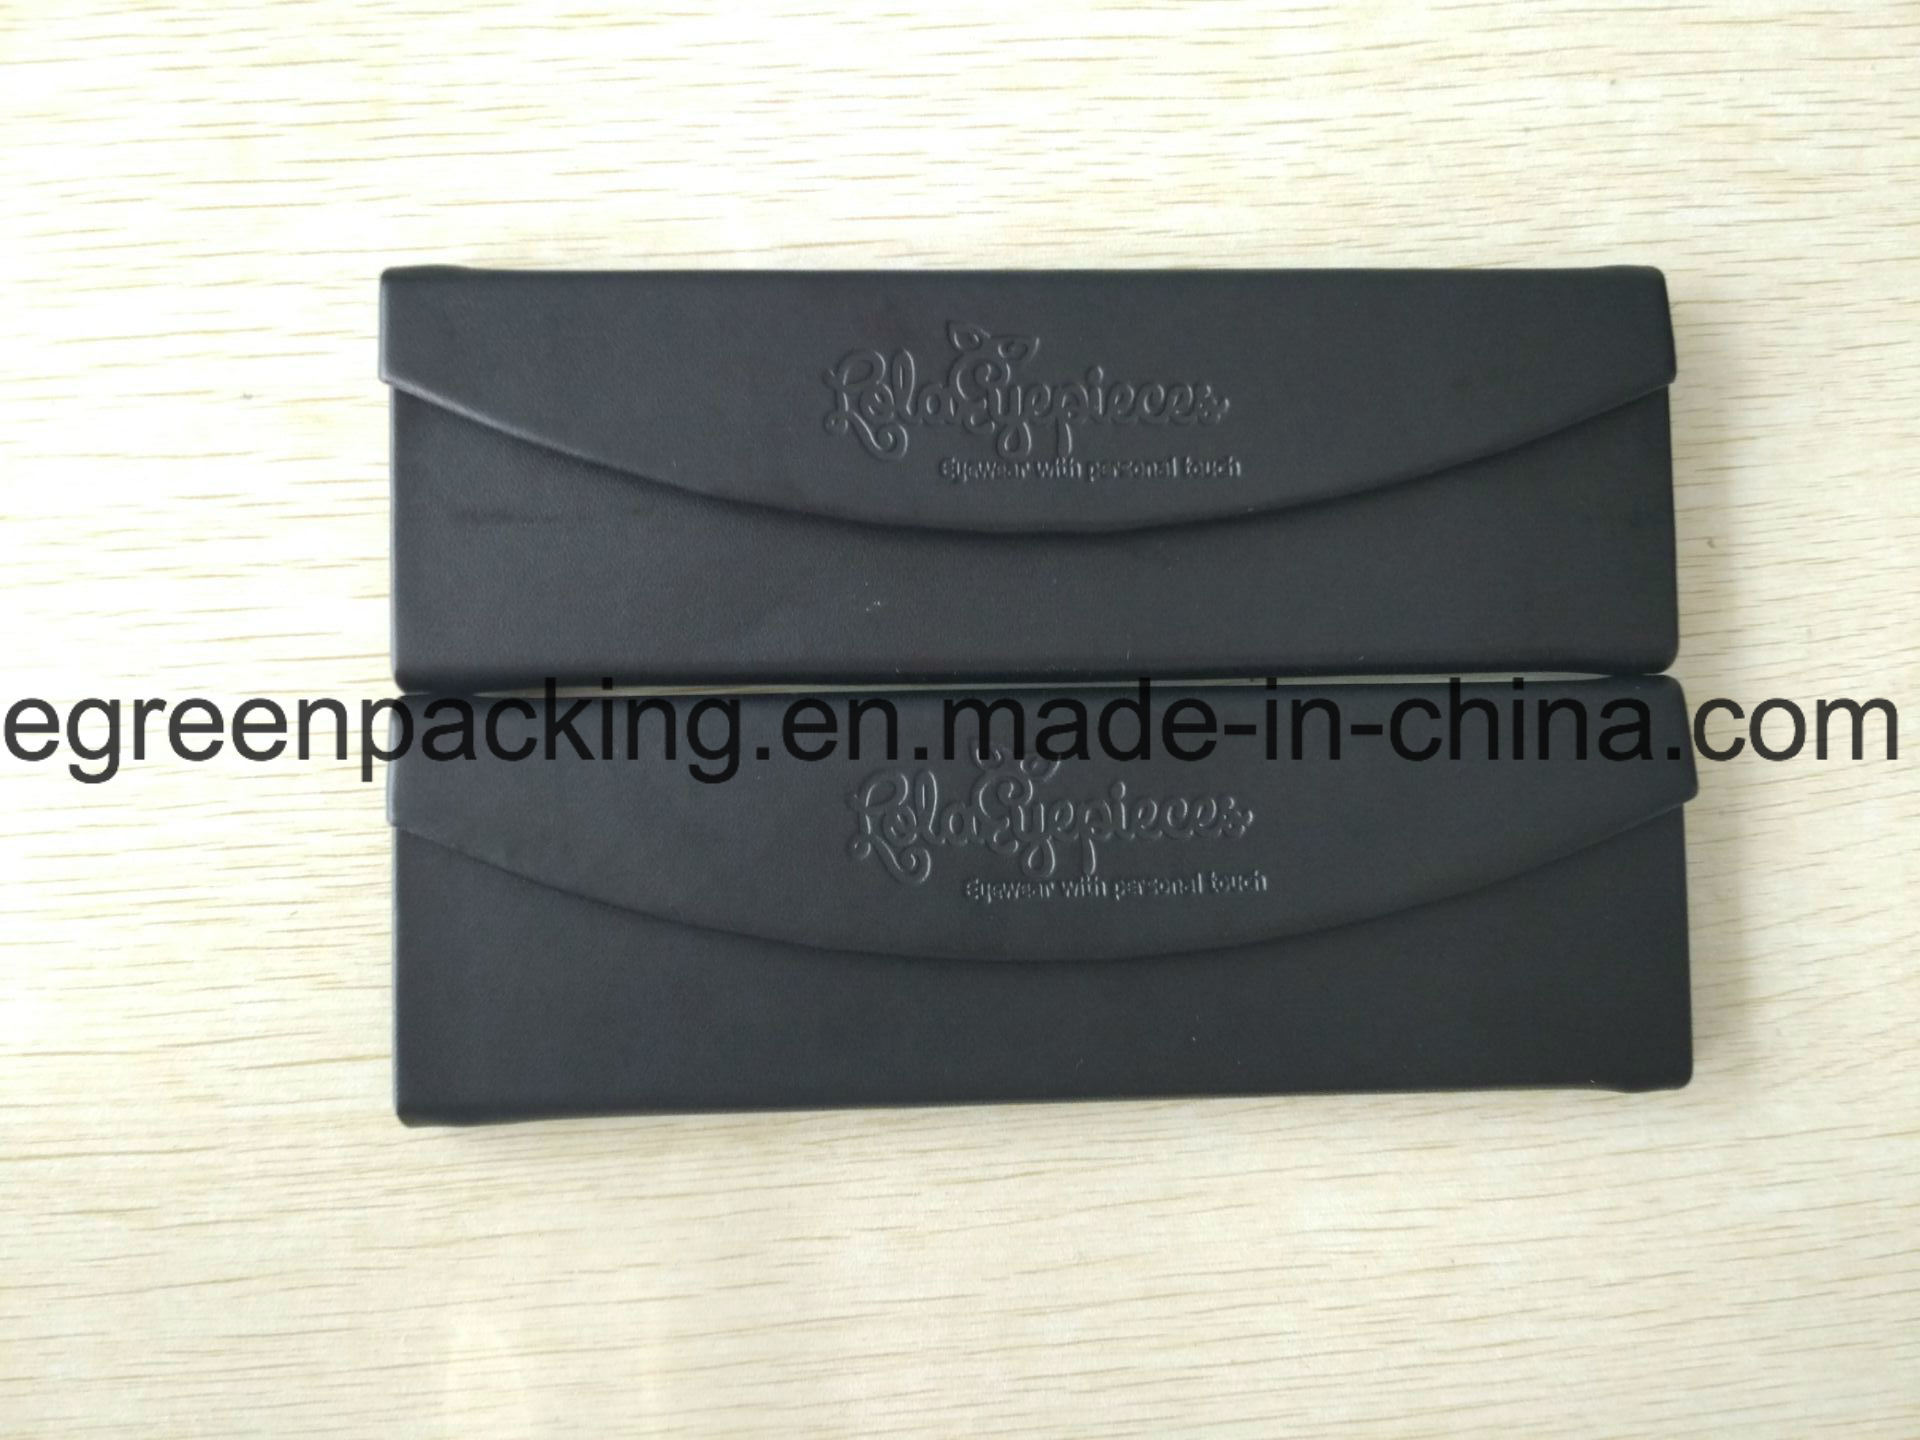 Eyeglasses Handcrafted Case /Triangle Folding Case (EH1)